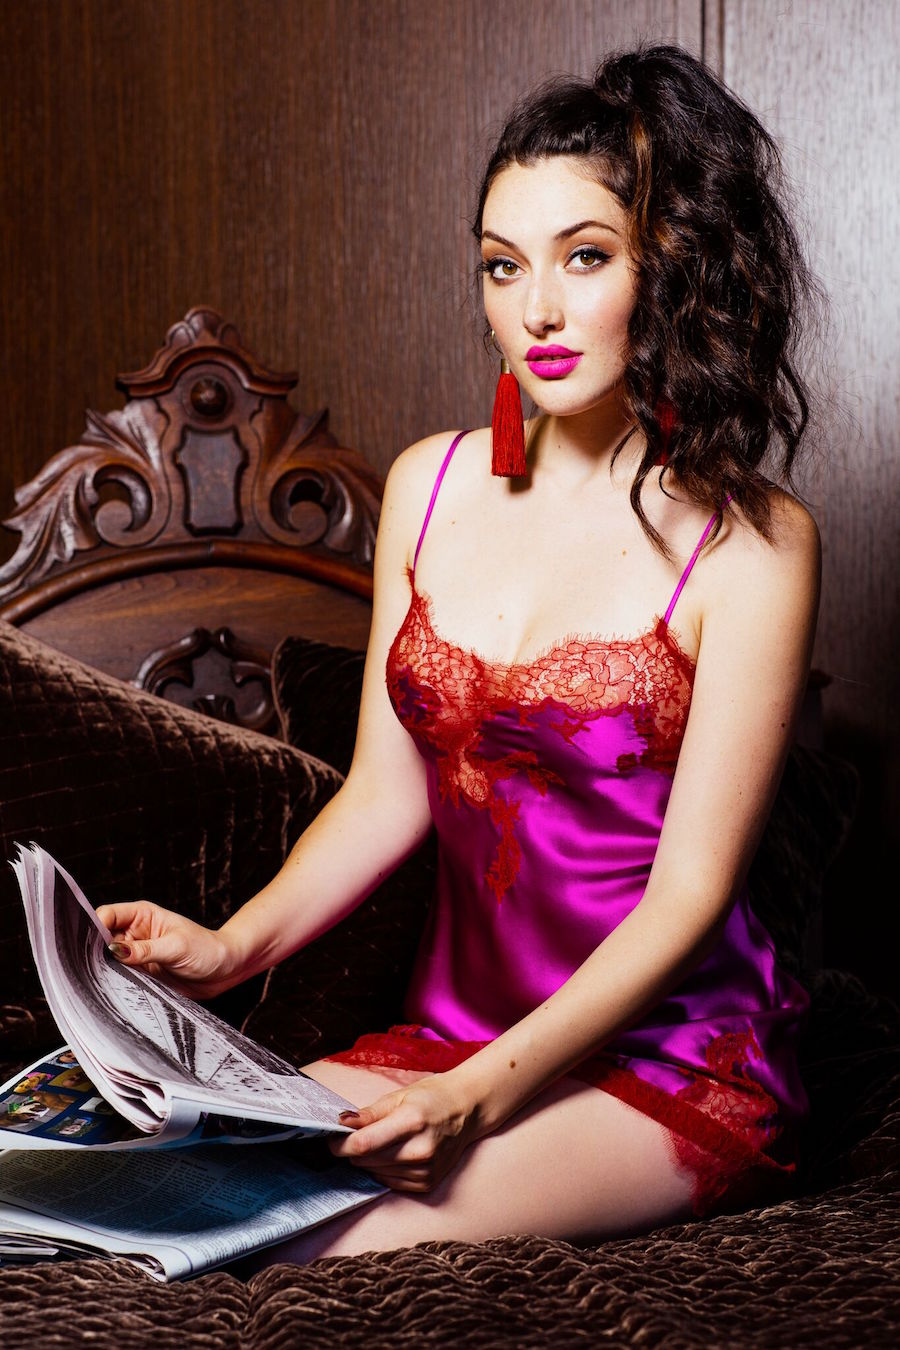 A look from the current selection of lingerie at Jane's Vanity